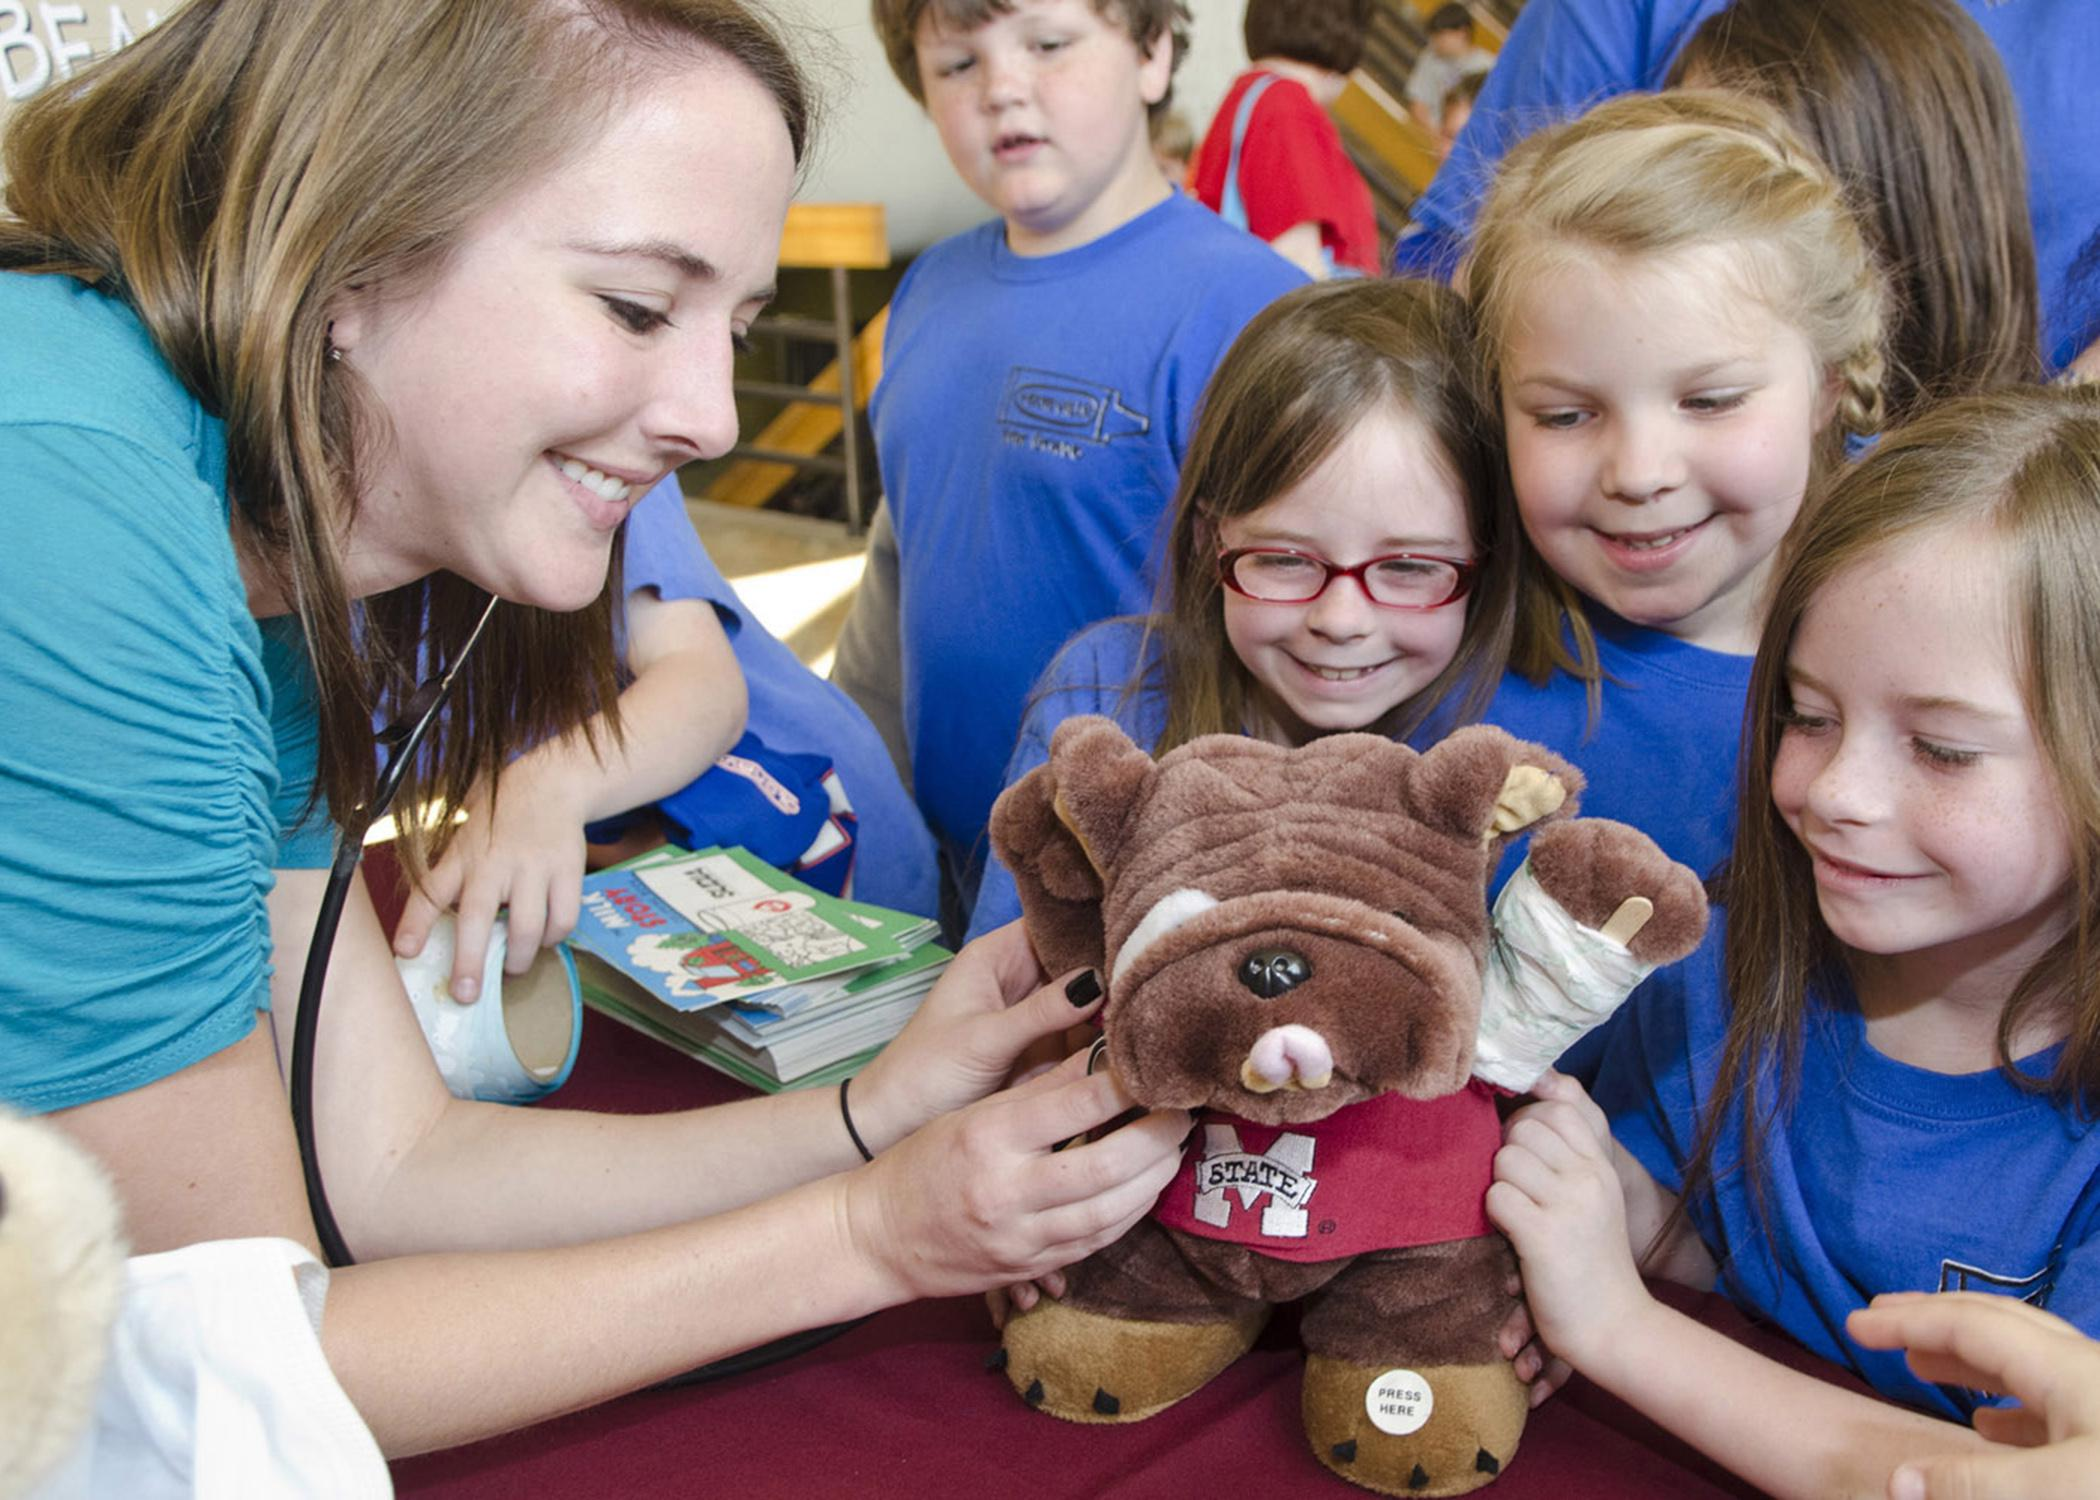 Pre-registered school groups will attend the Mississippi State University College of Veterinary Open House on April 5. Students, such as these at the 2012 event, enjoy the hands-on activities and demonstrations. (Photo by MSU College of Veterinary Medicine/Tom Thompson)